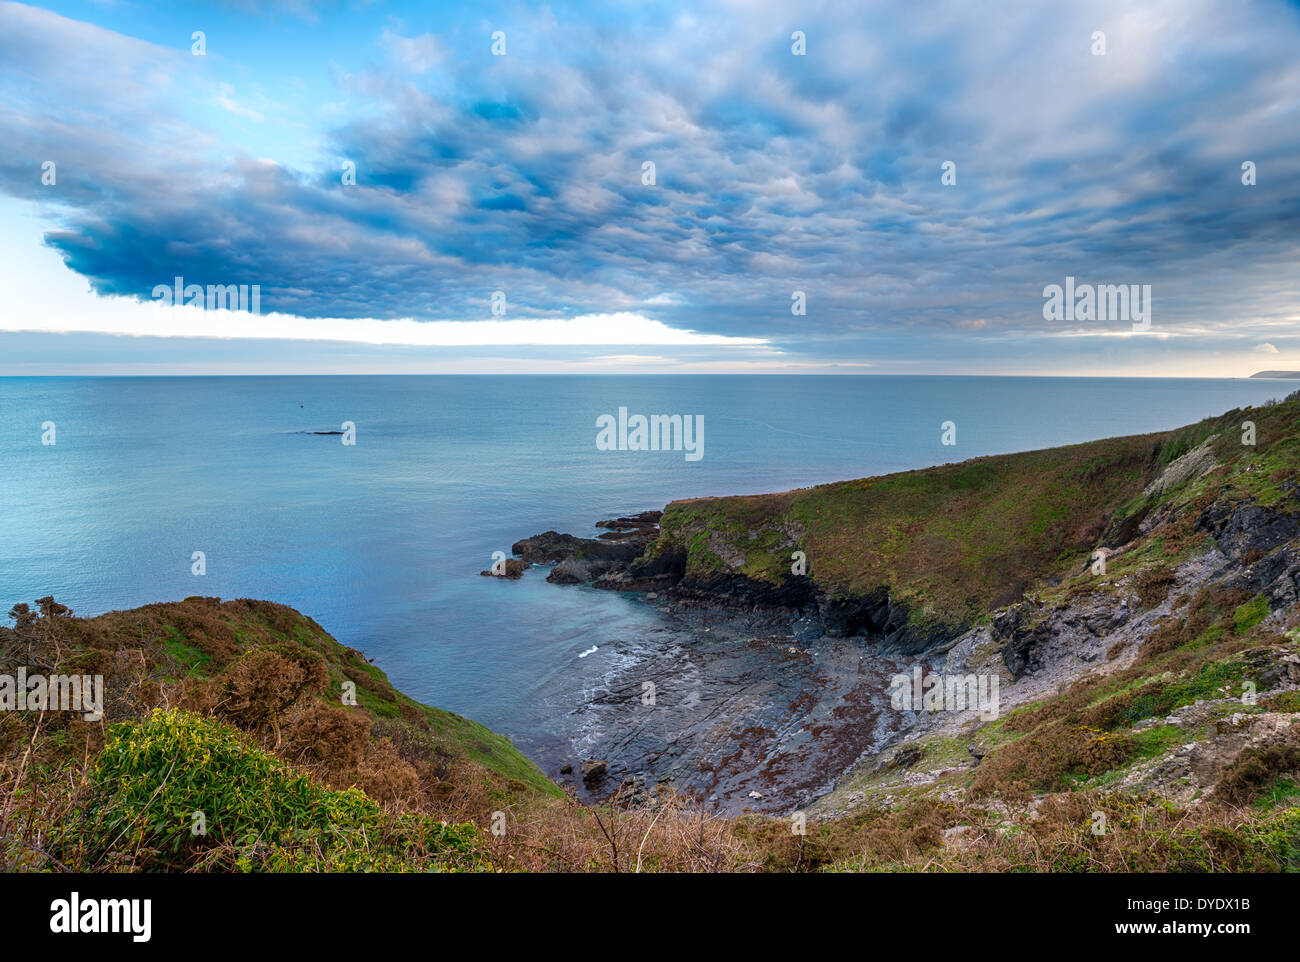 Recueillir plus de nuages Gribbin Head près de St Austell à Cornwall Photo Stock